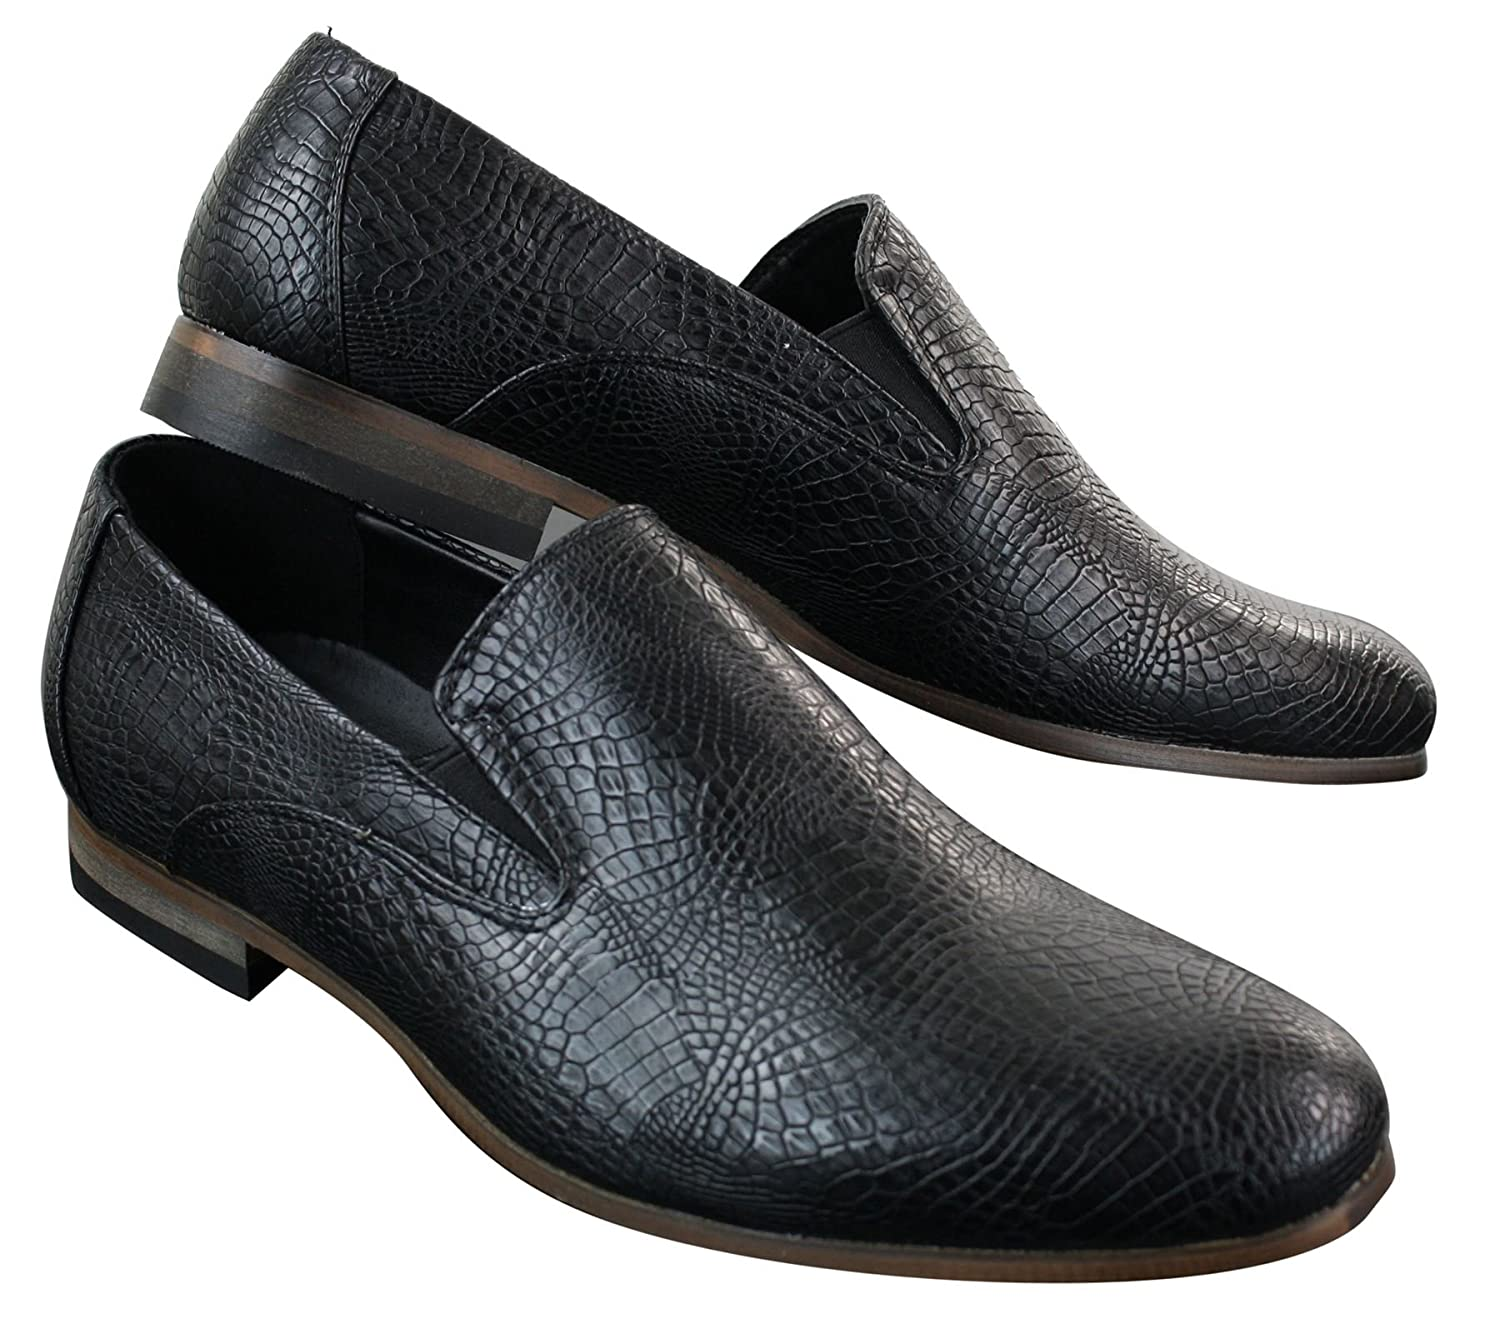 091f977c22eeeb Mens Slip On Snake Crocodile Leather Skin PU Black Shoes Smart Casual   Amazon.co.uk  Shoes   Bags